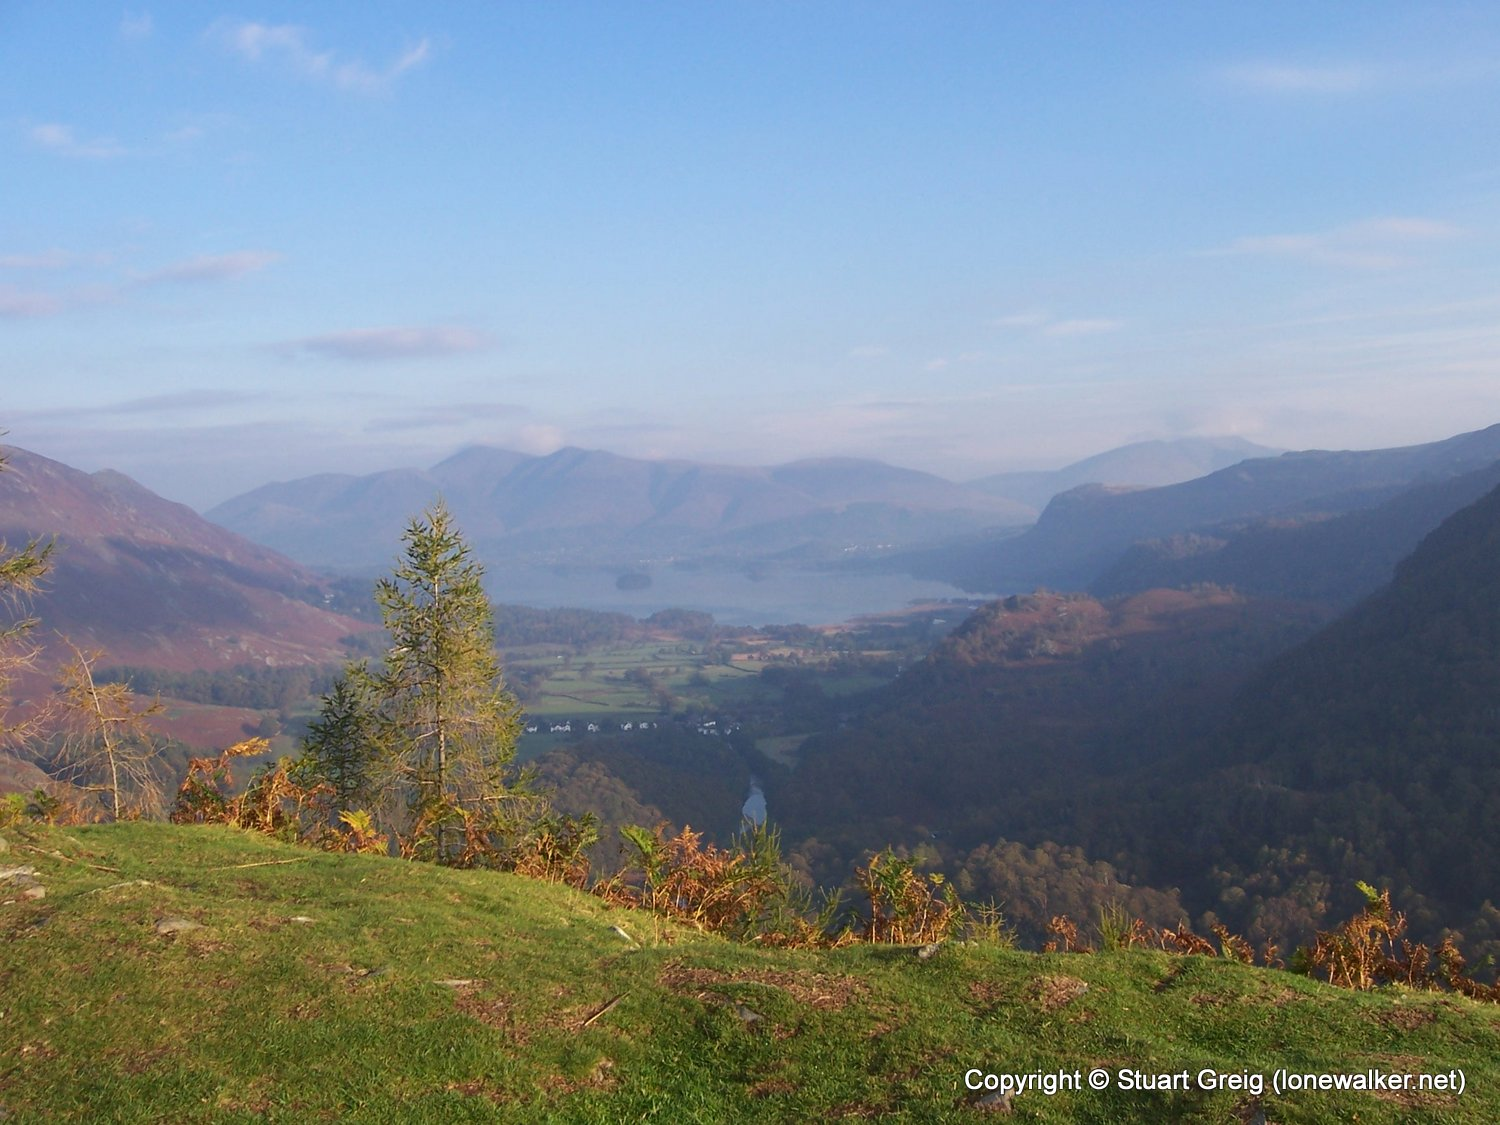 Keswick and Stonethwaite